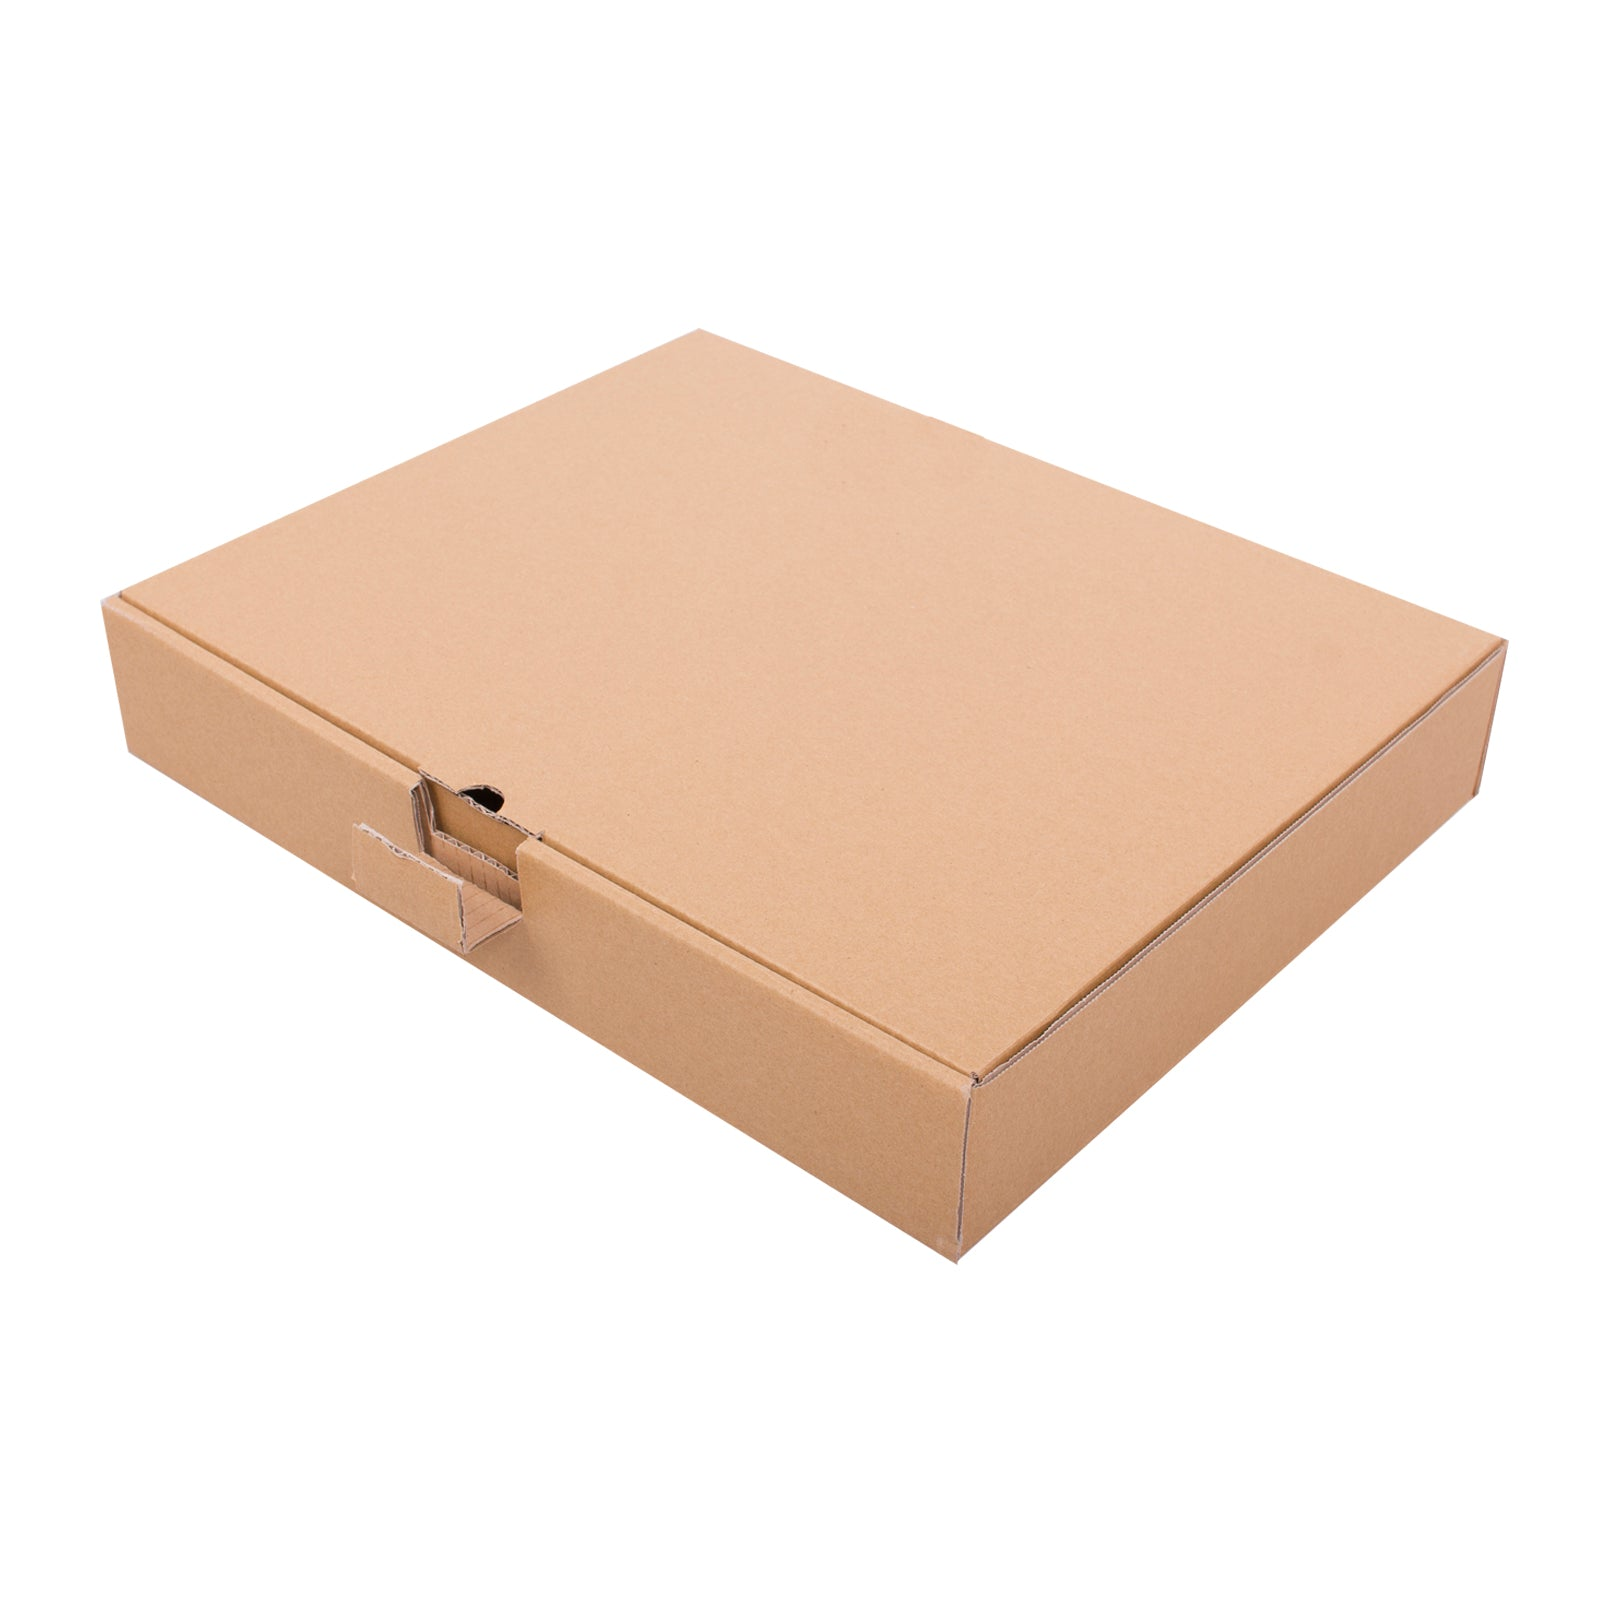 Maxi Parcel Royal Mail Small Parcel PiP Cardboard Boxes,SR Mailing,